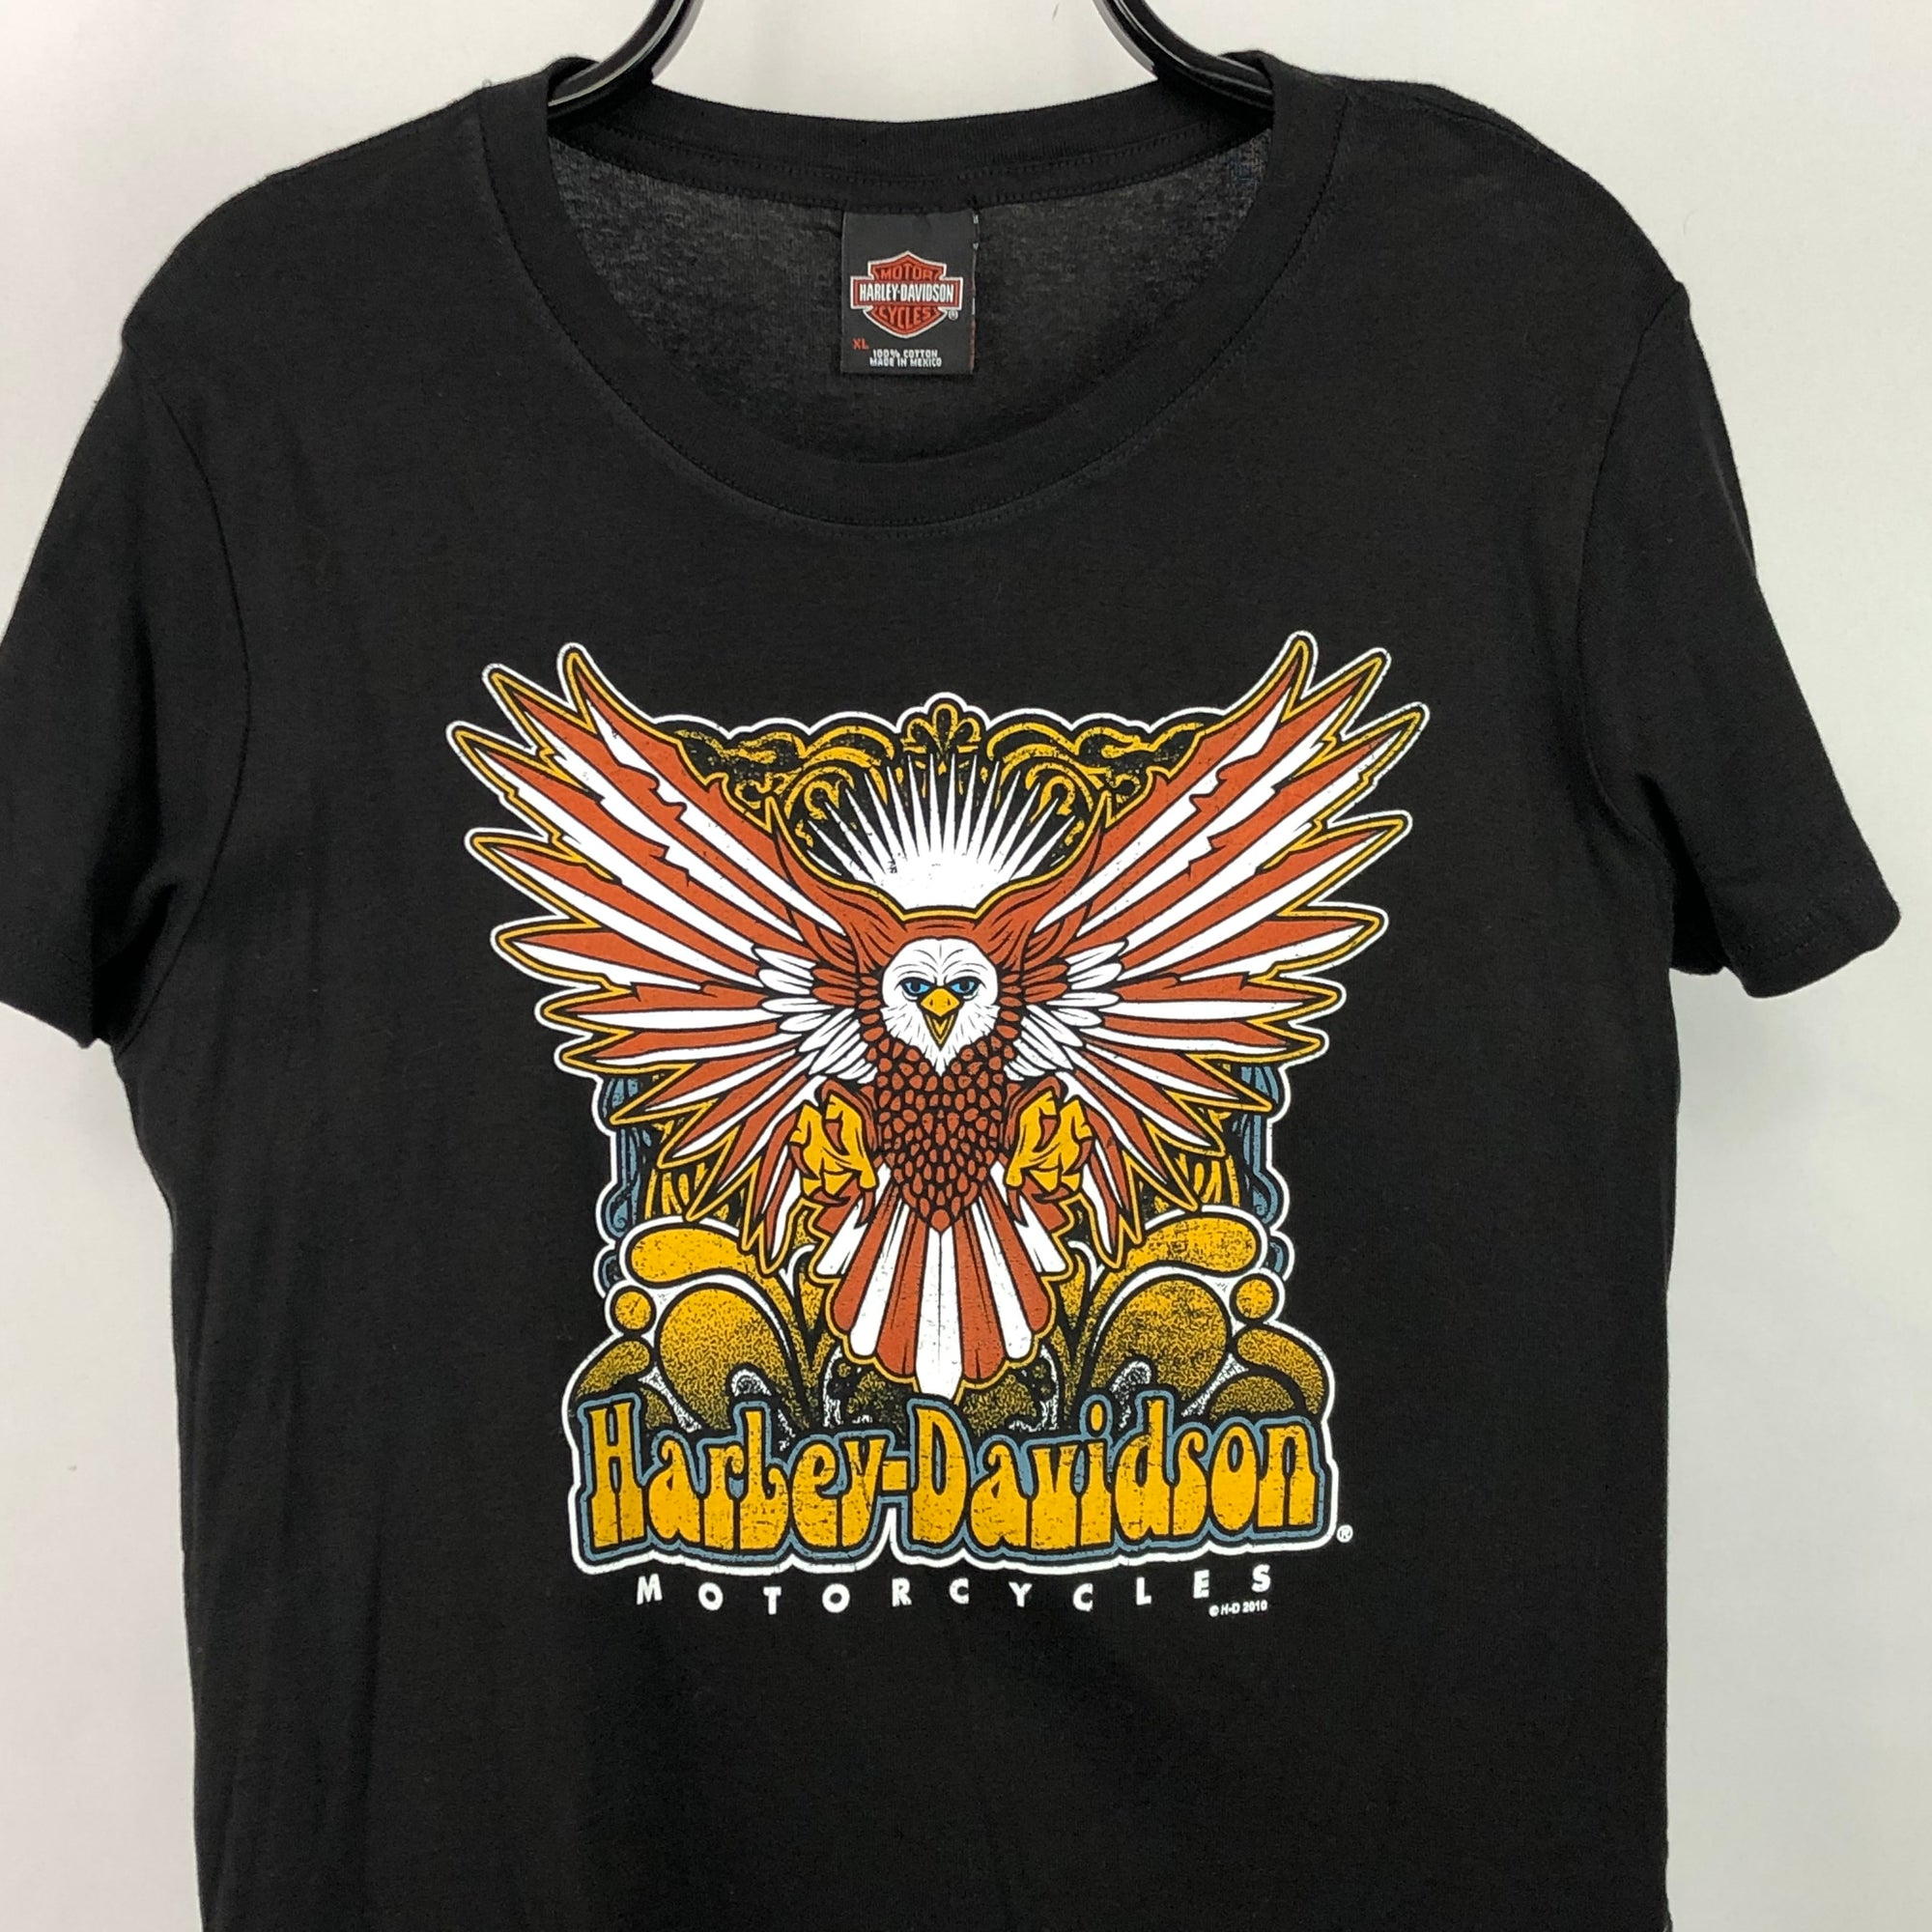 Harley Davidson Eagle Tee - Men's Small/Women's Large